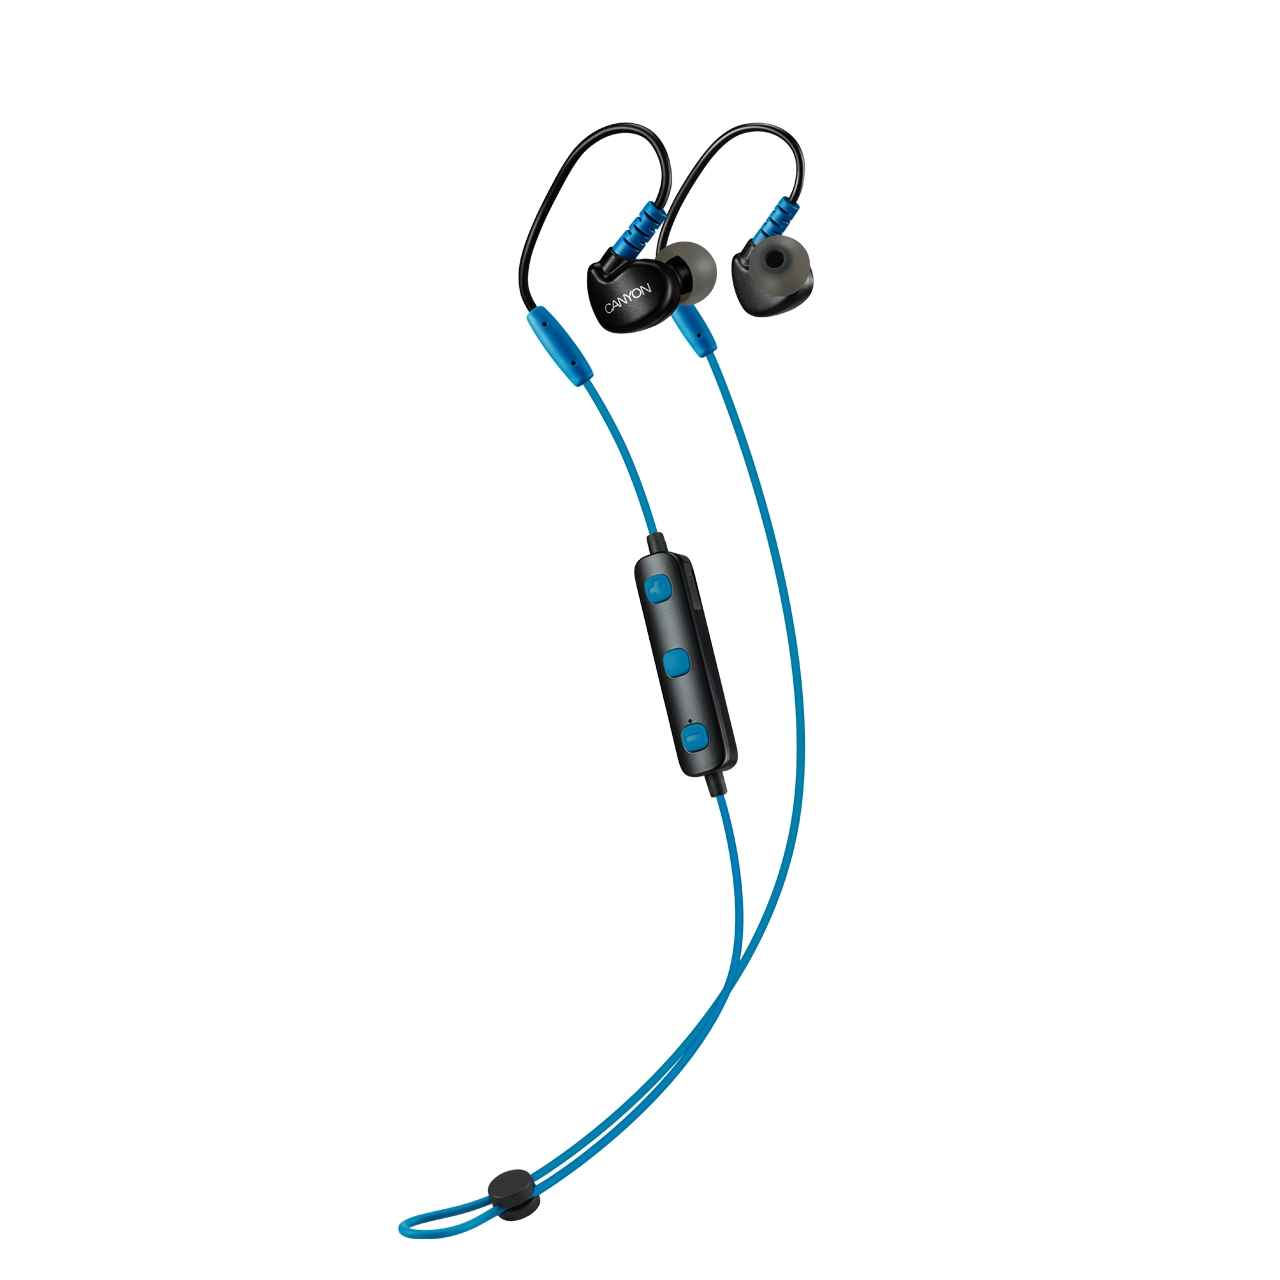 Наушники Canyon Bluetooth sport earphones with microphone blue (H2CNSSBTHS1BL)